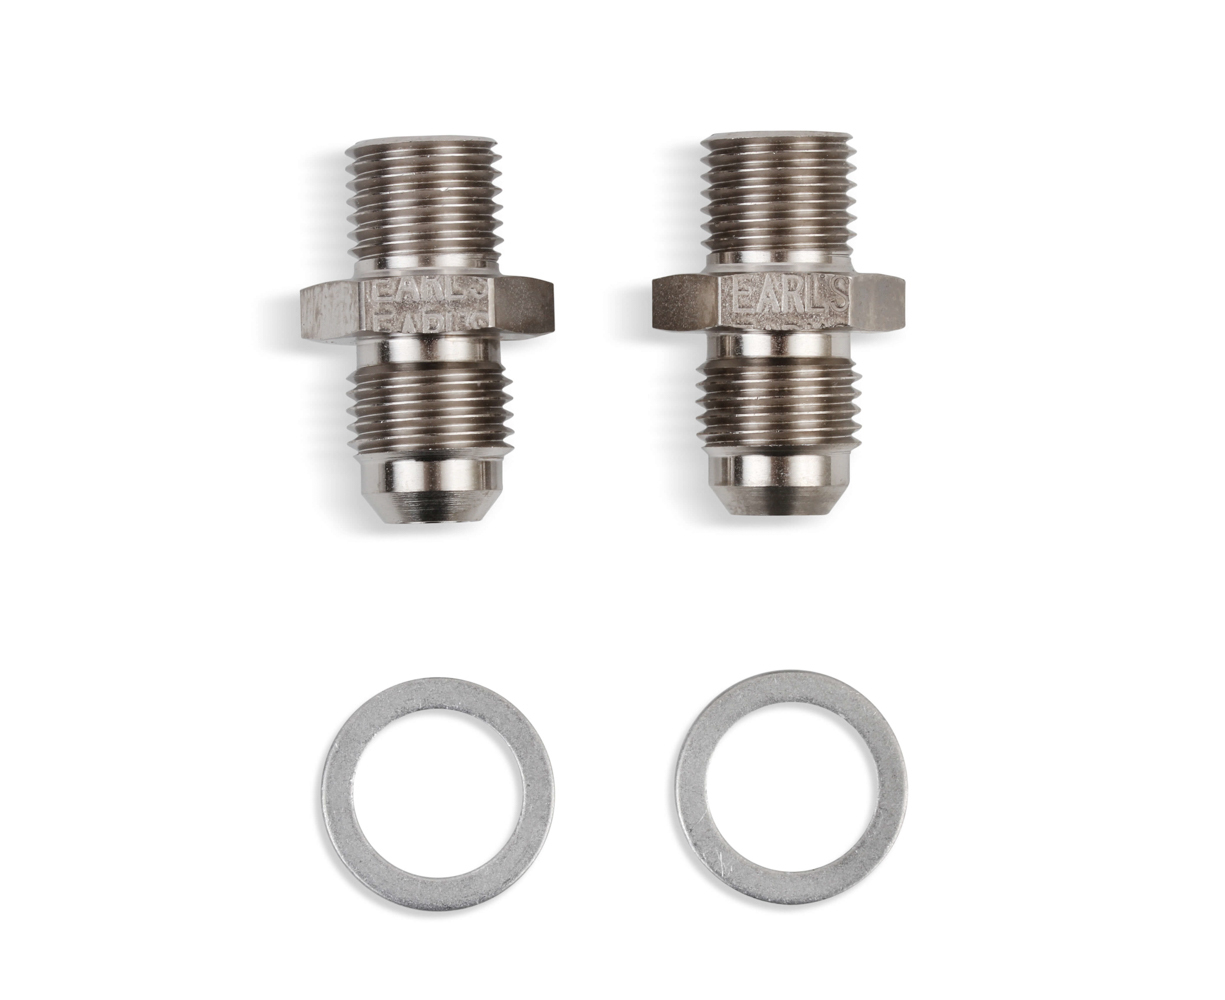 Earls 940006ERL 6an Male to 1/4-18 NPSM Adapter Fittings 2pk